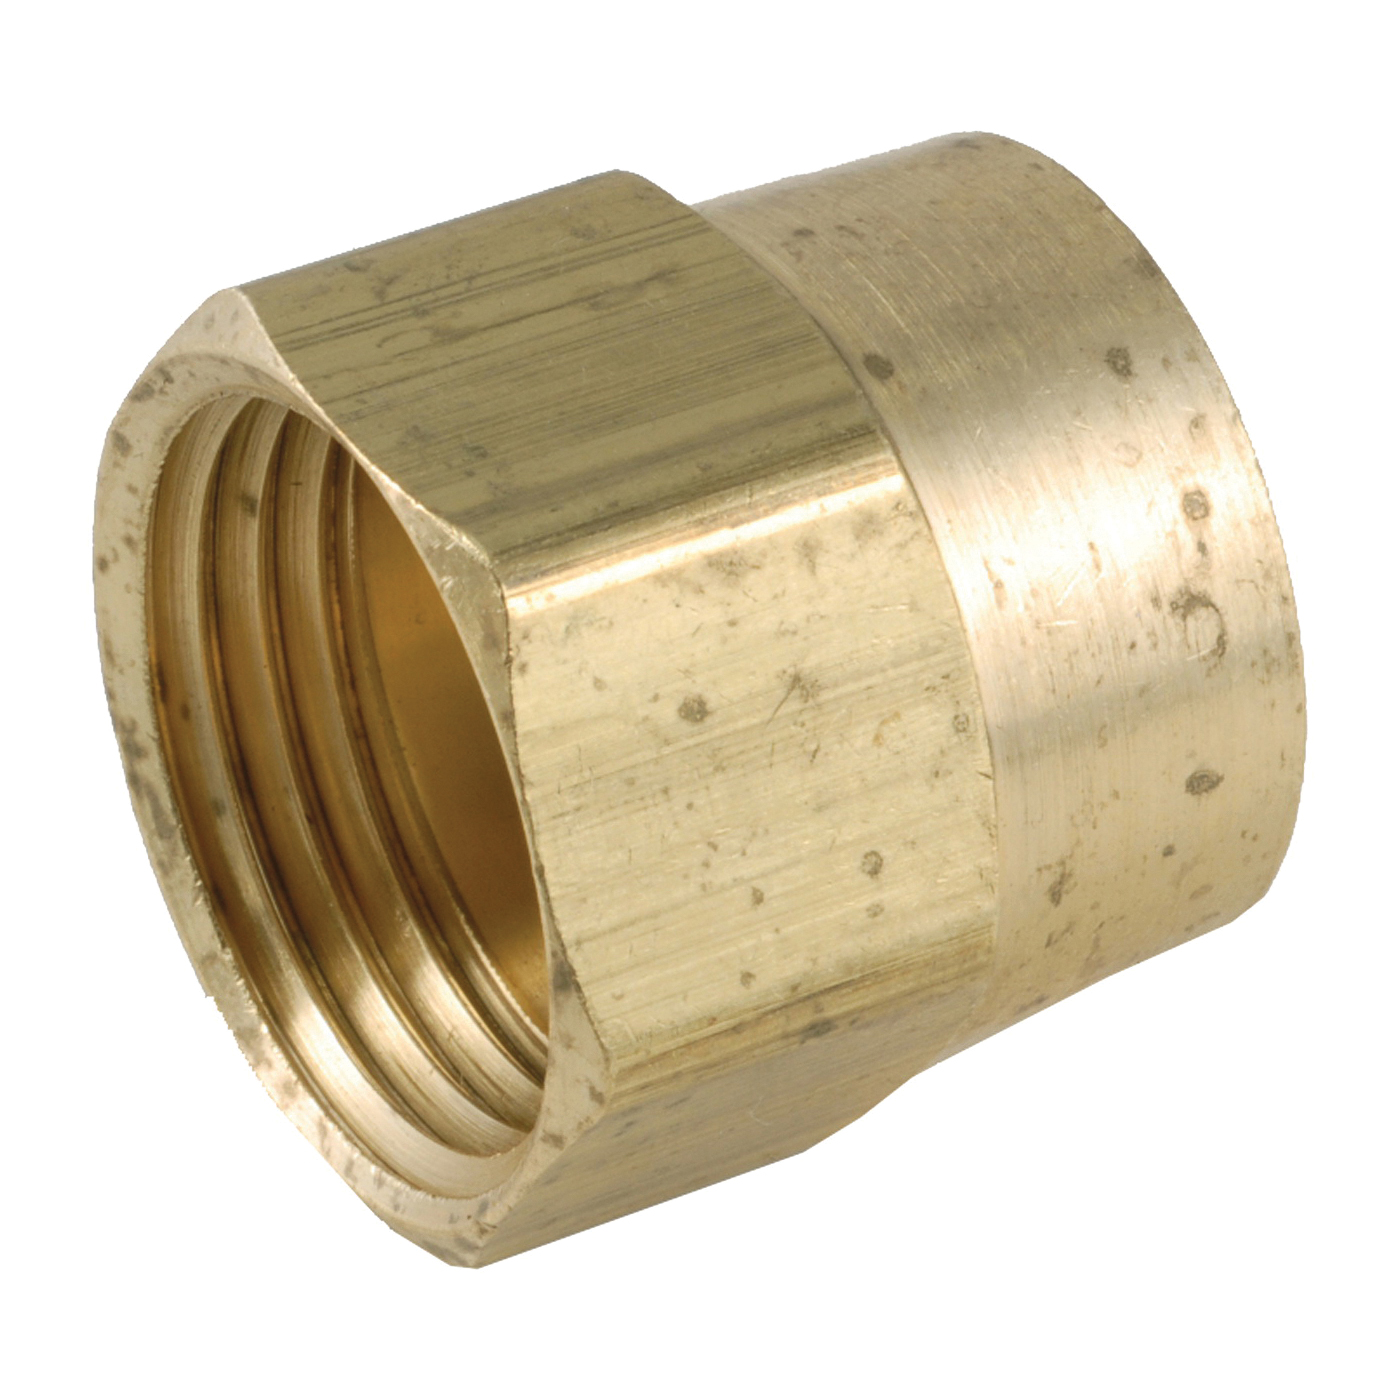 Picture of Anderson Metals 757482-1212 Hose Adapter, 3/4 x 3/4 in, FGH x FIP, Brass, For: Garden Hose